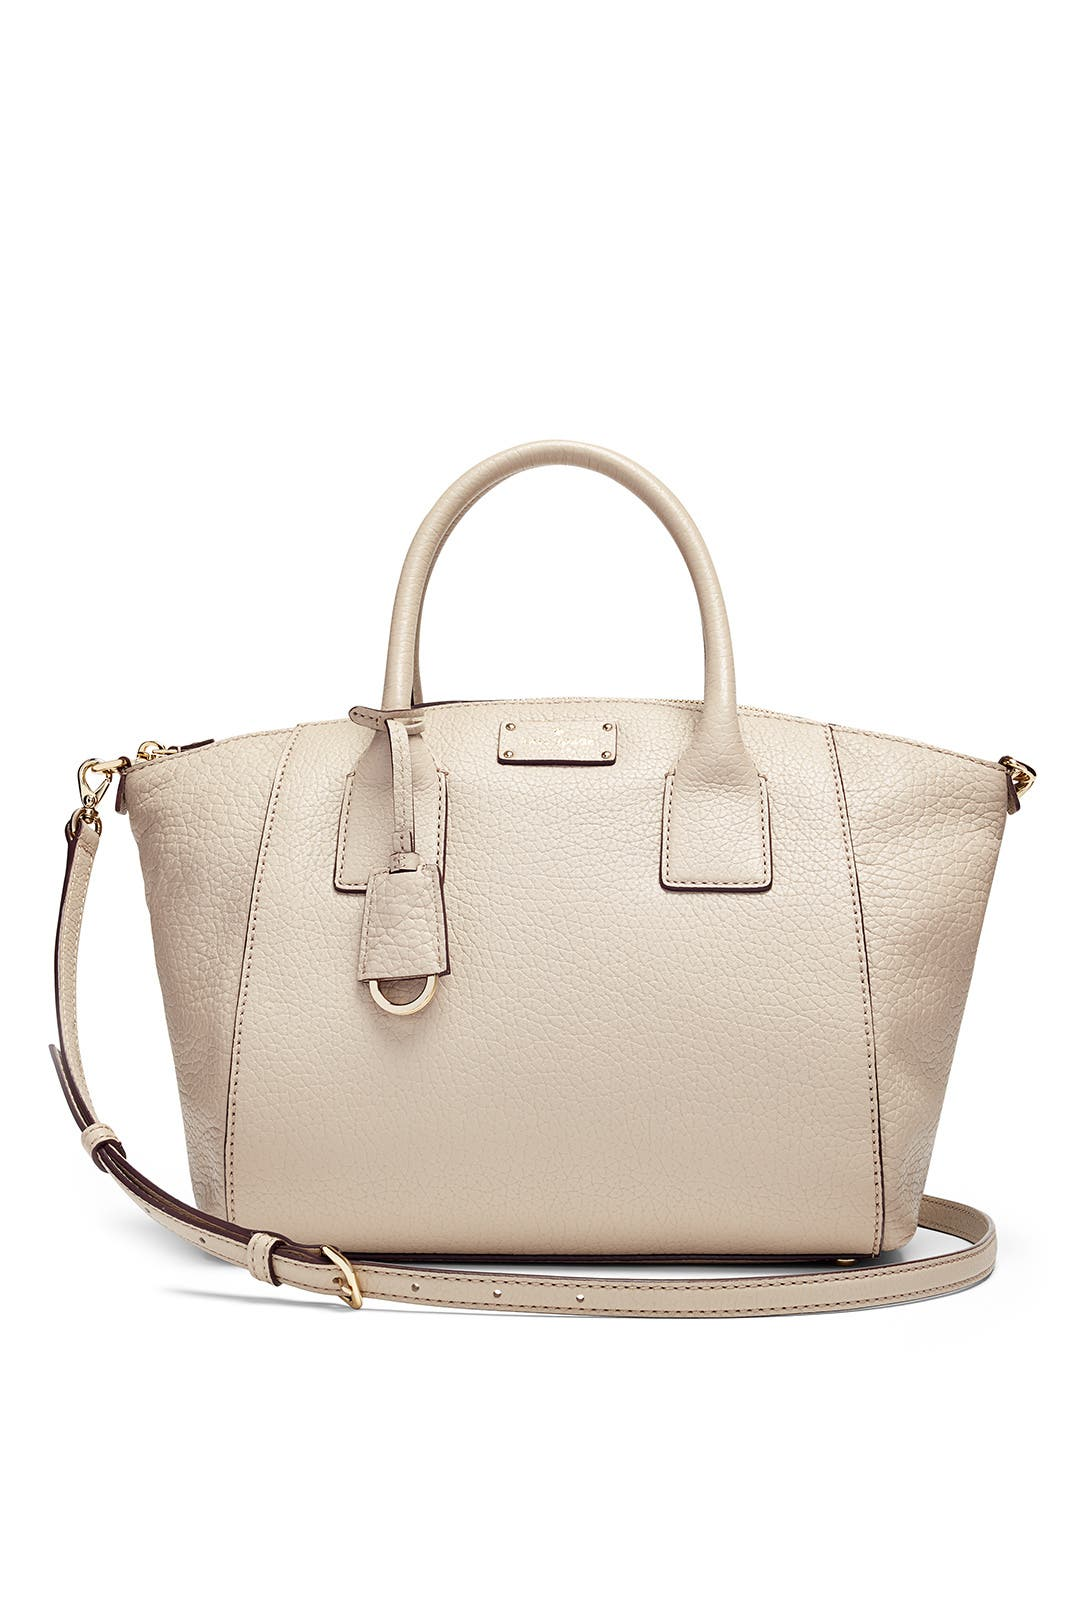 bag knockoffs - Kendall Court Small Henley Bag by kate spade new york accessories ...